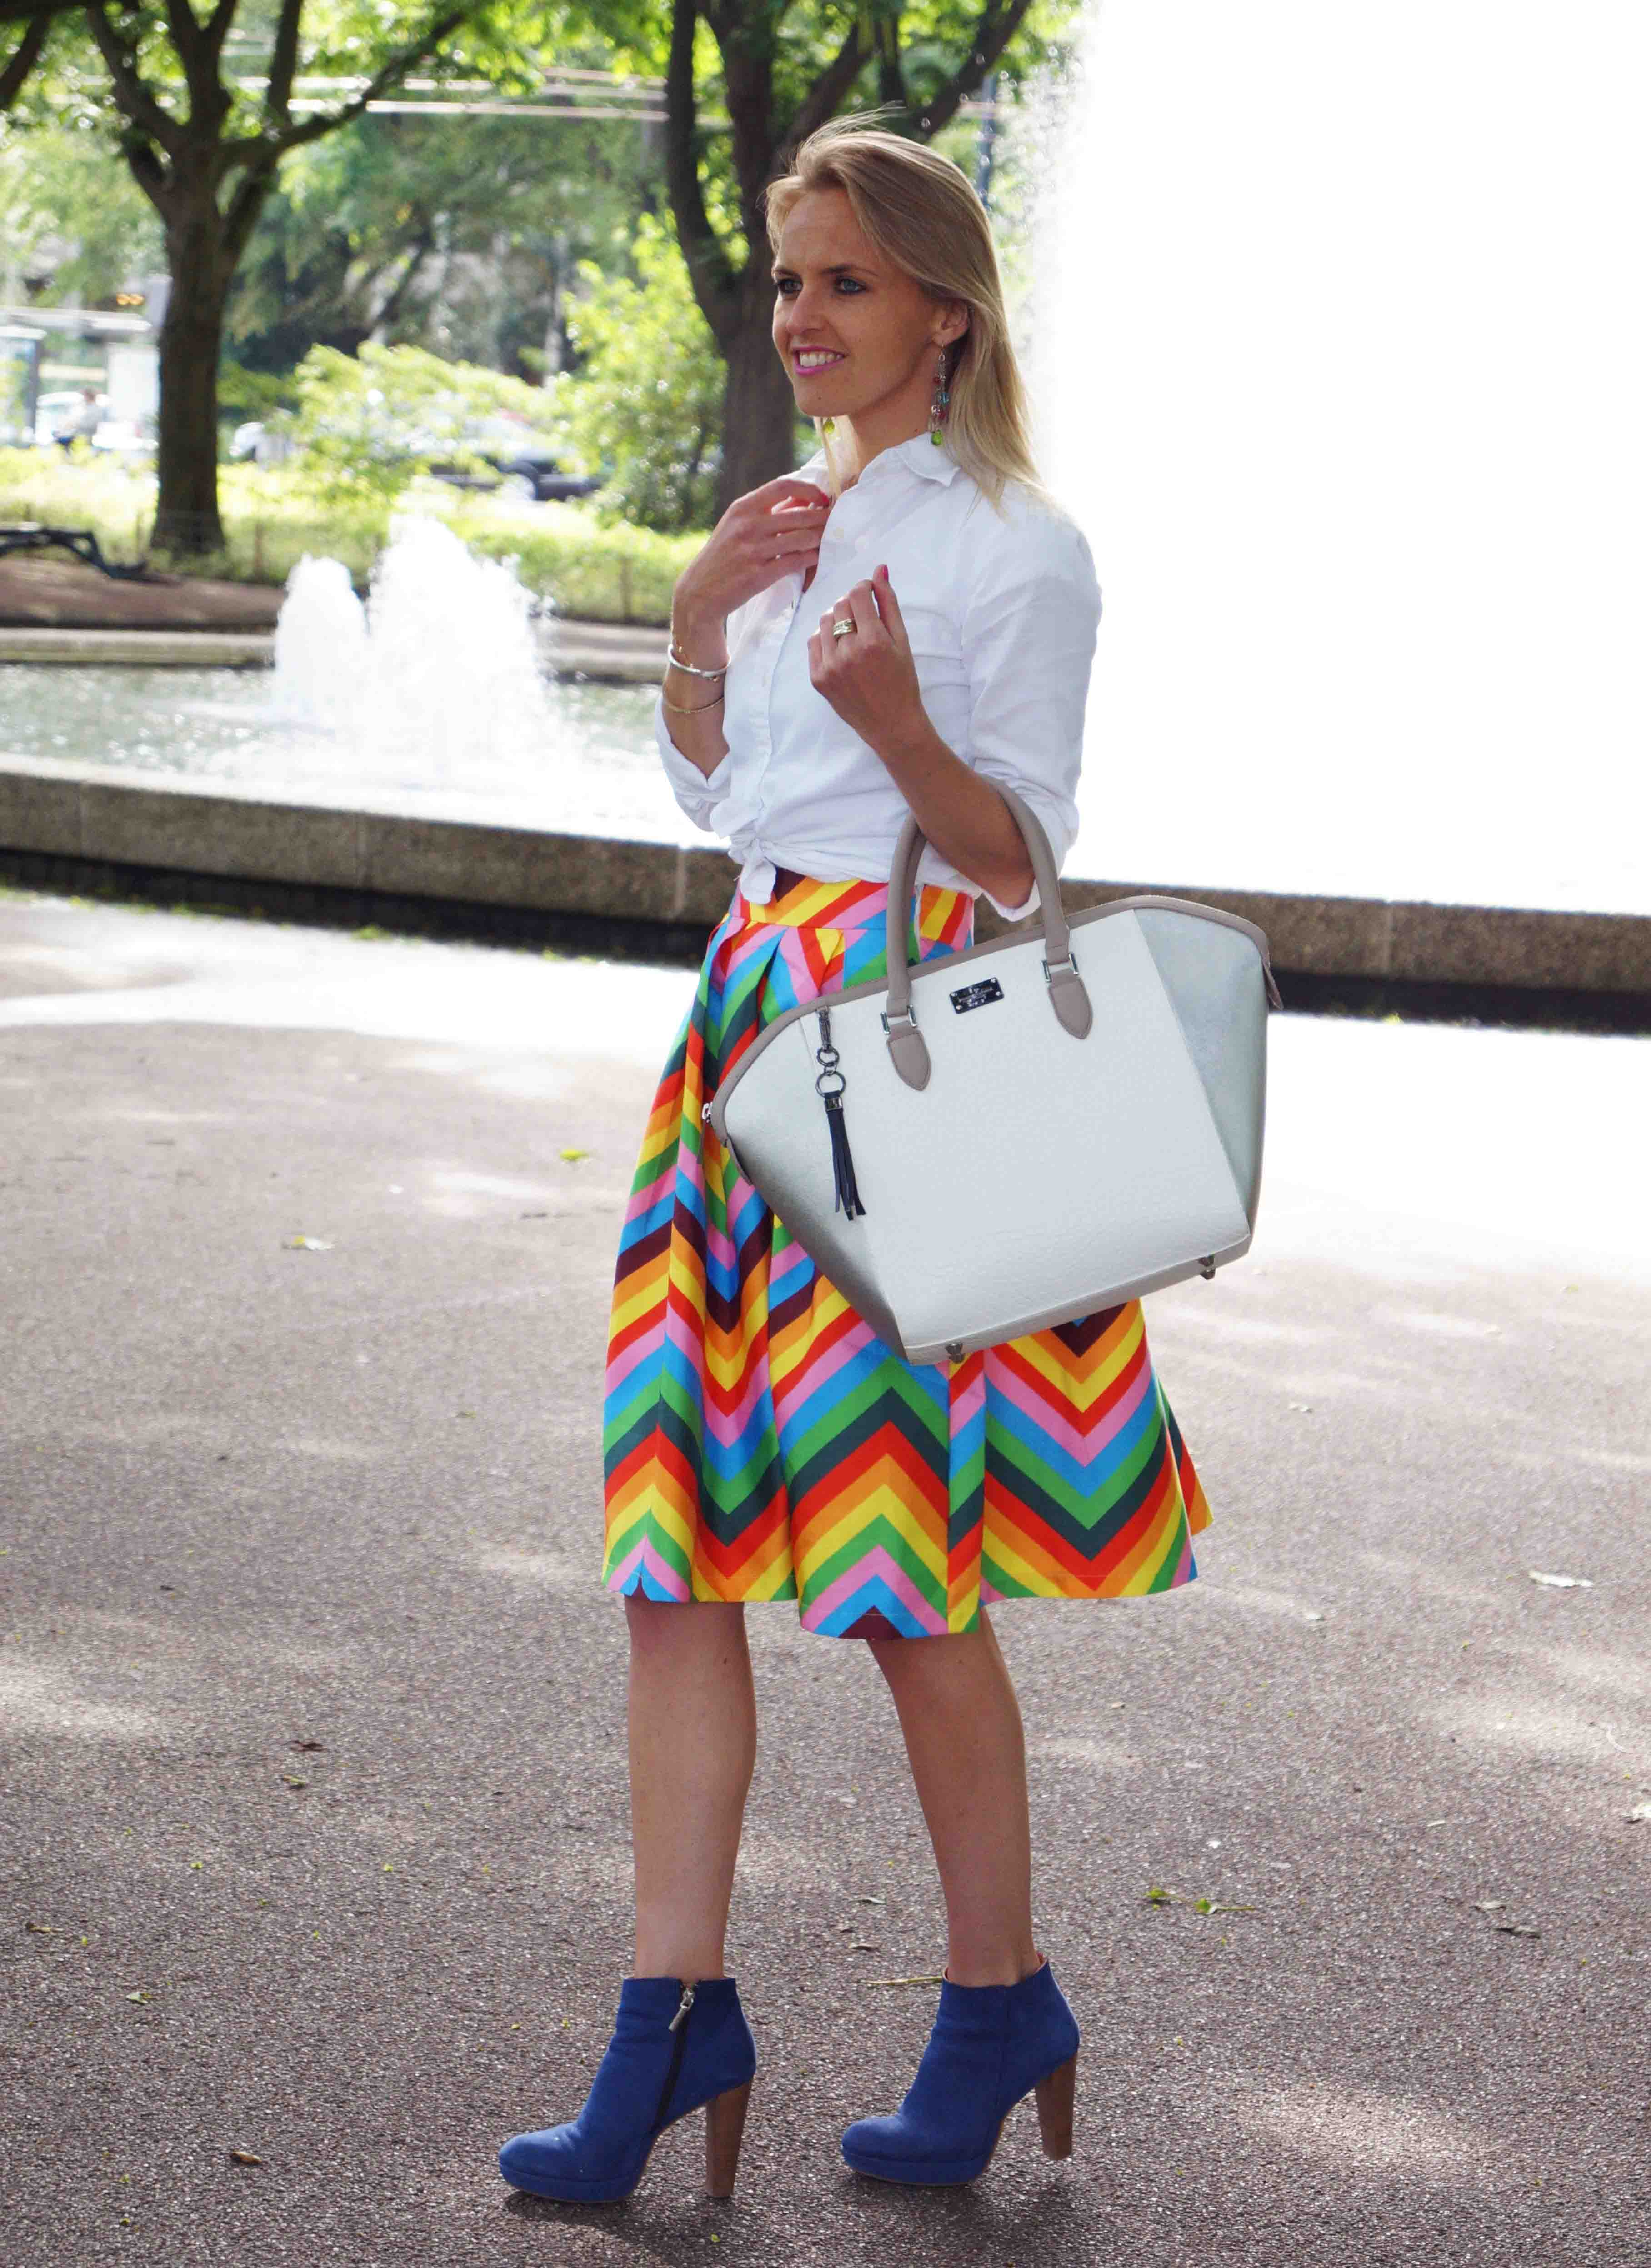 Bag at You - Fashion Blog - Paul's Boutique bags - Tassen - OOTD